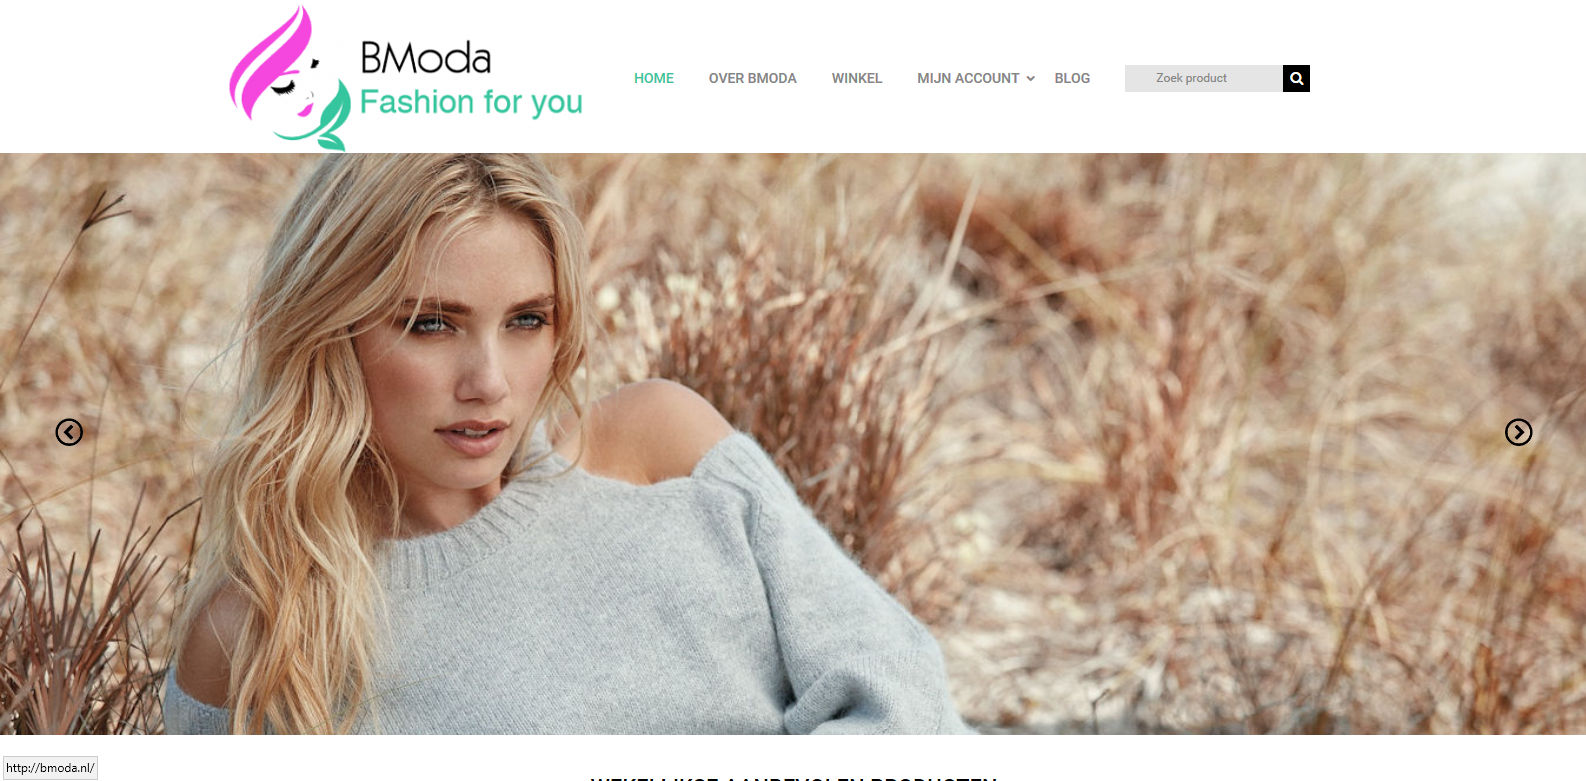 BModa Fashion for you